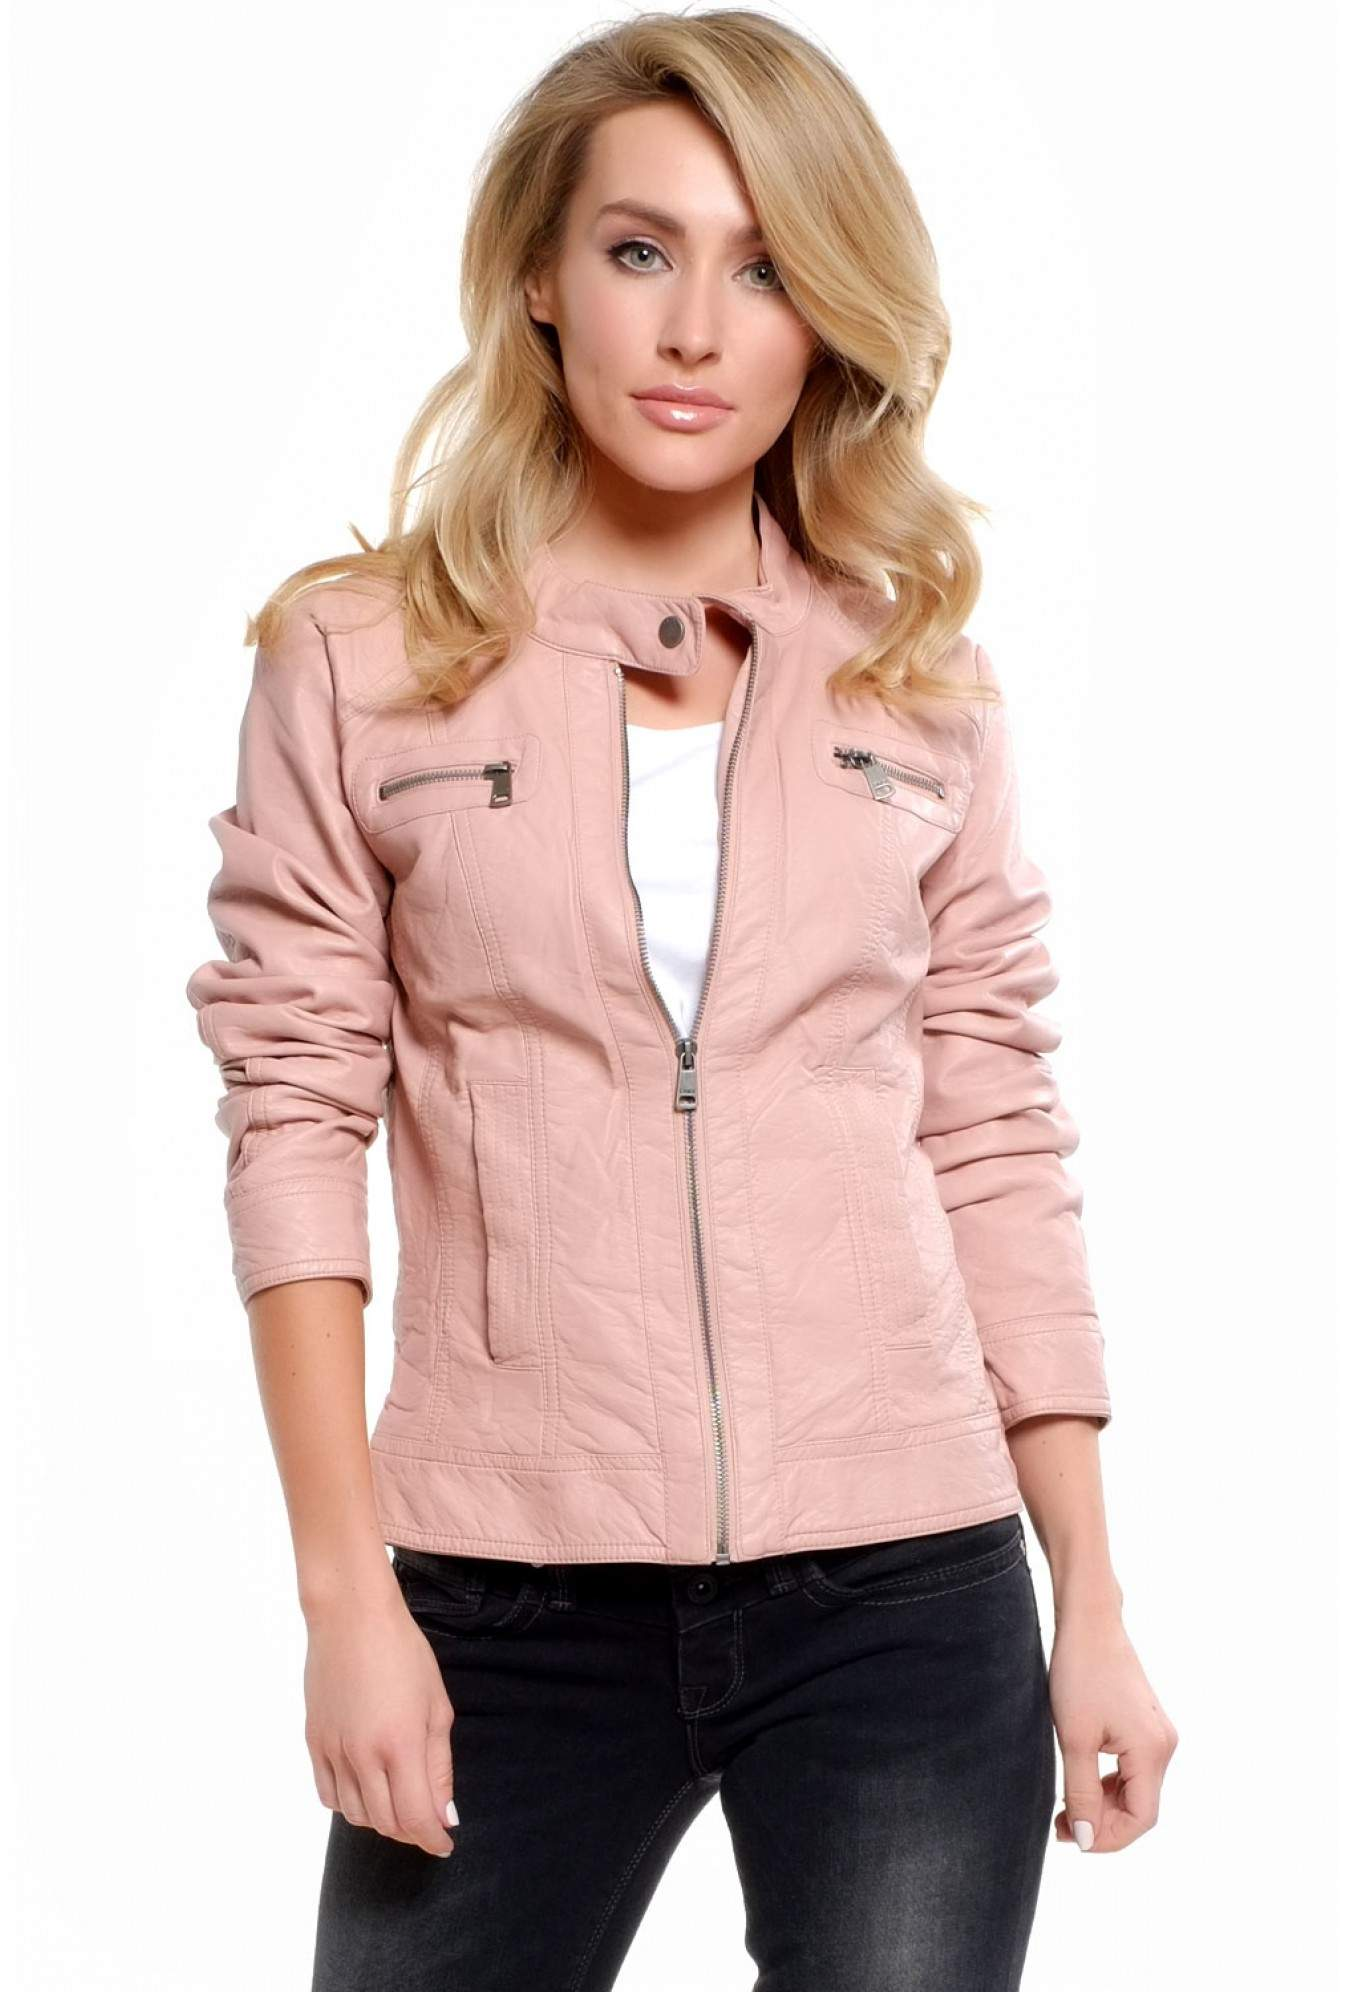 83c935f38f25 Only Melanie Faux Leather Jacket in Baby Pink